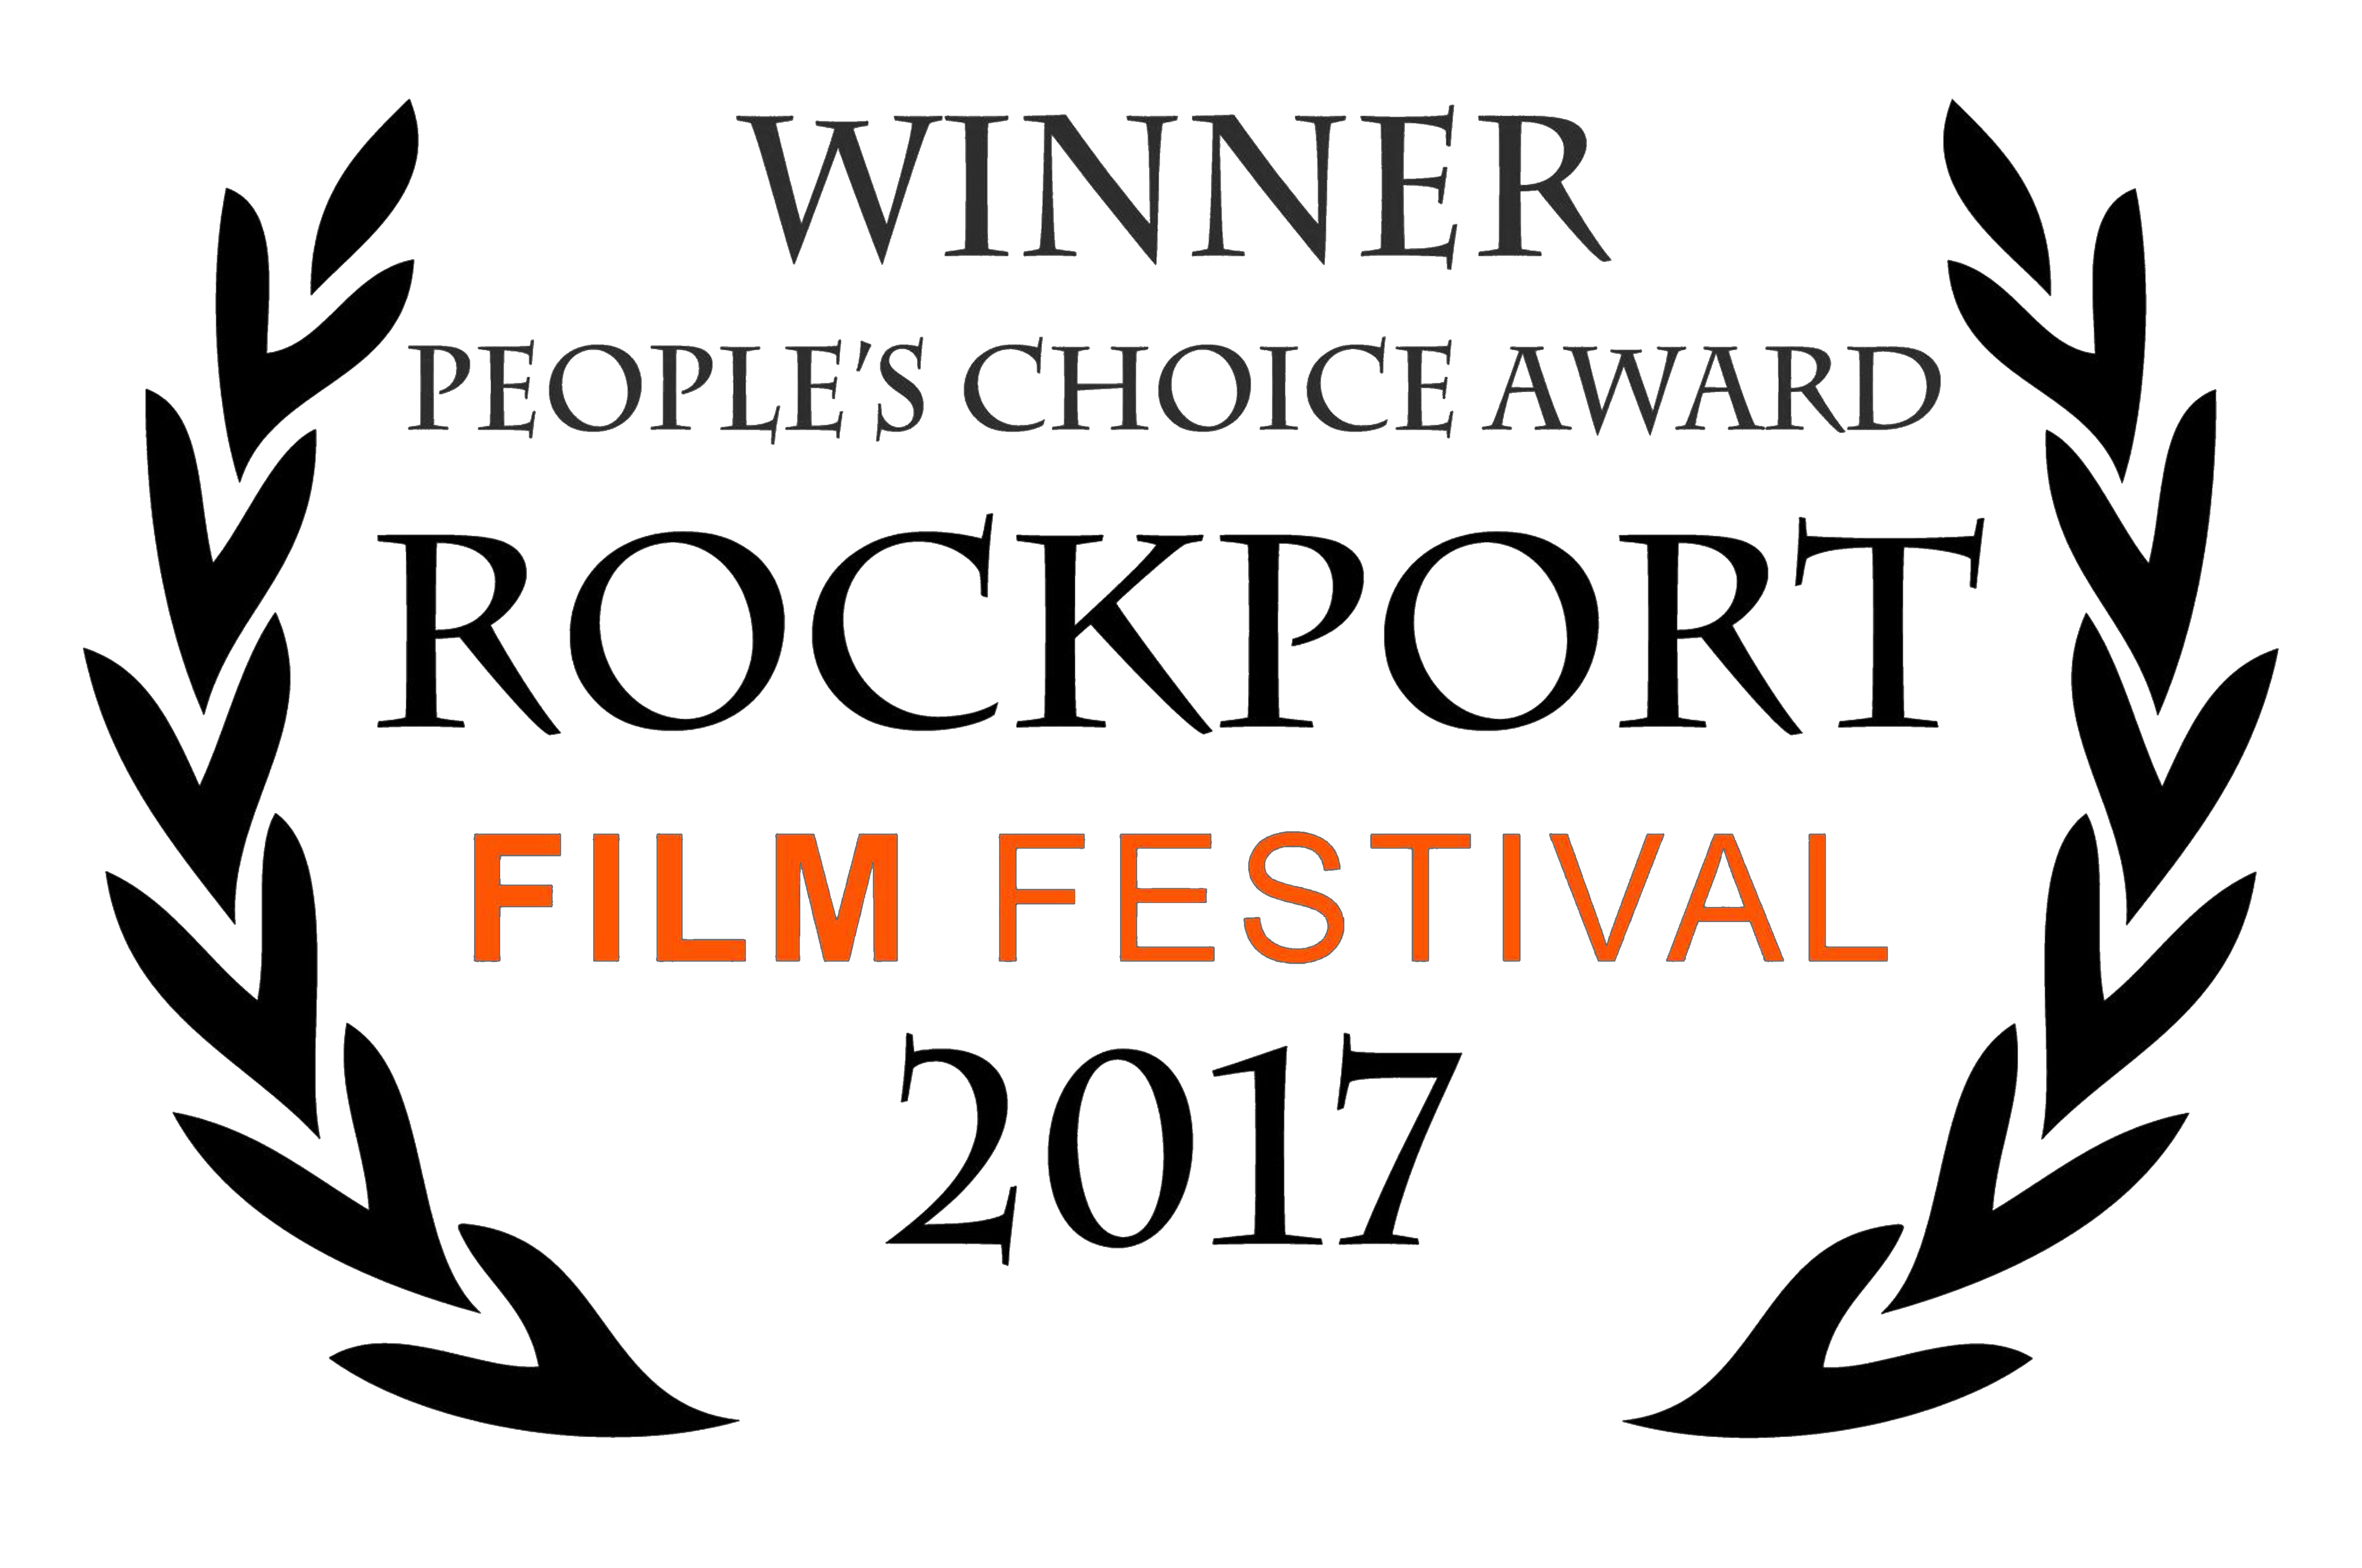 Winner peaple's choice award for RockPort film festival 2017